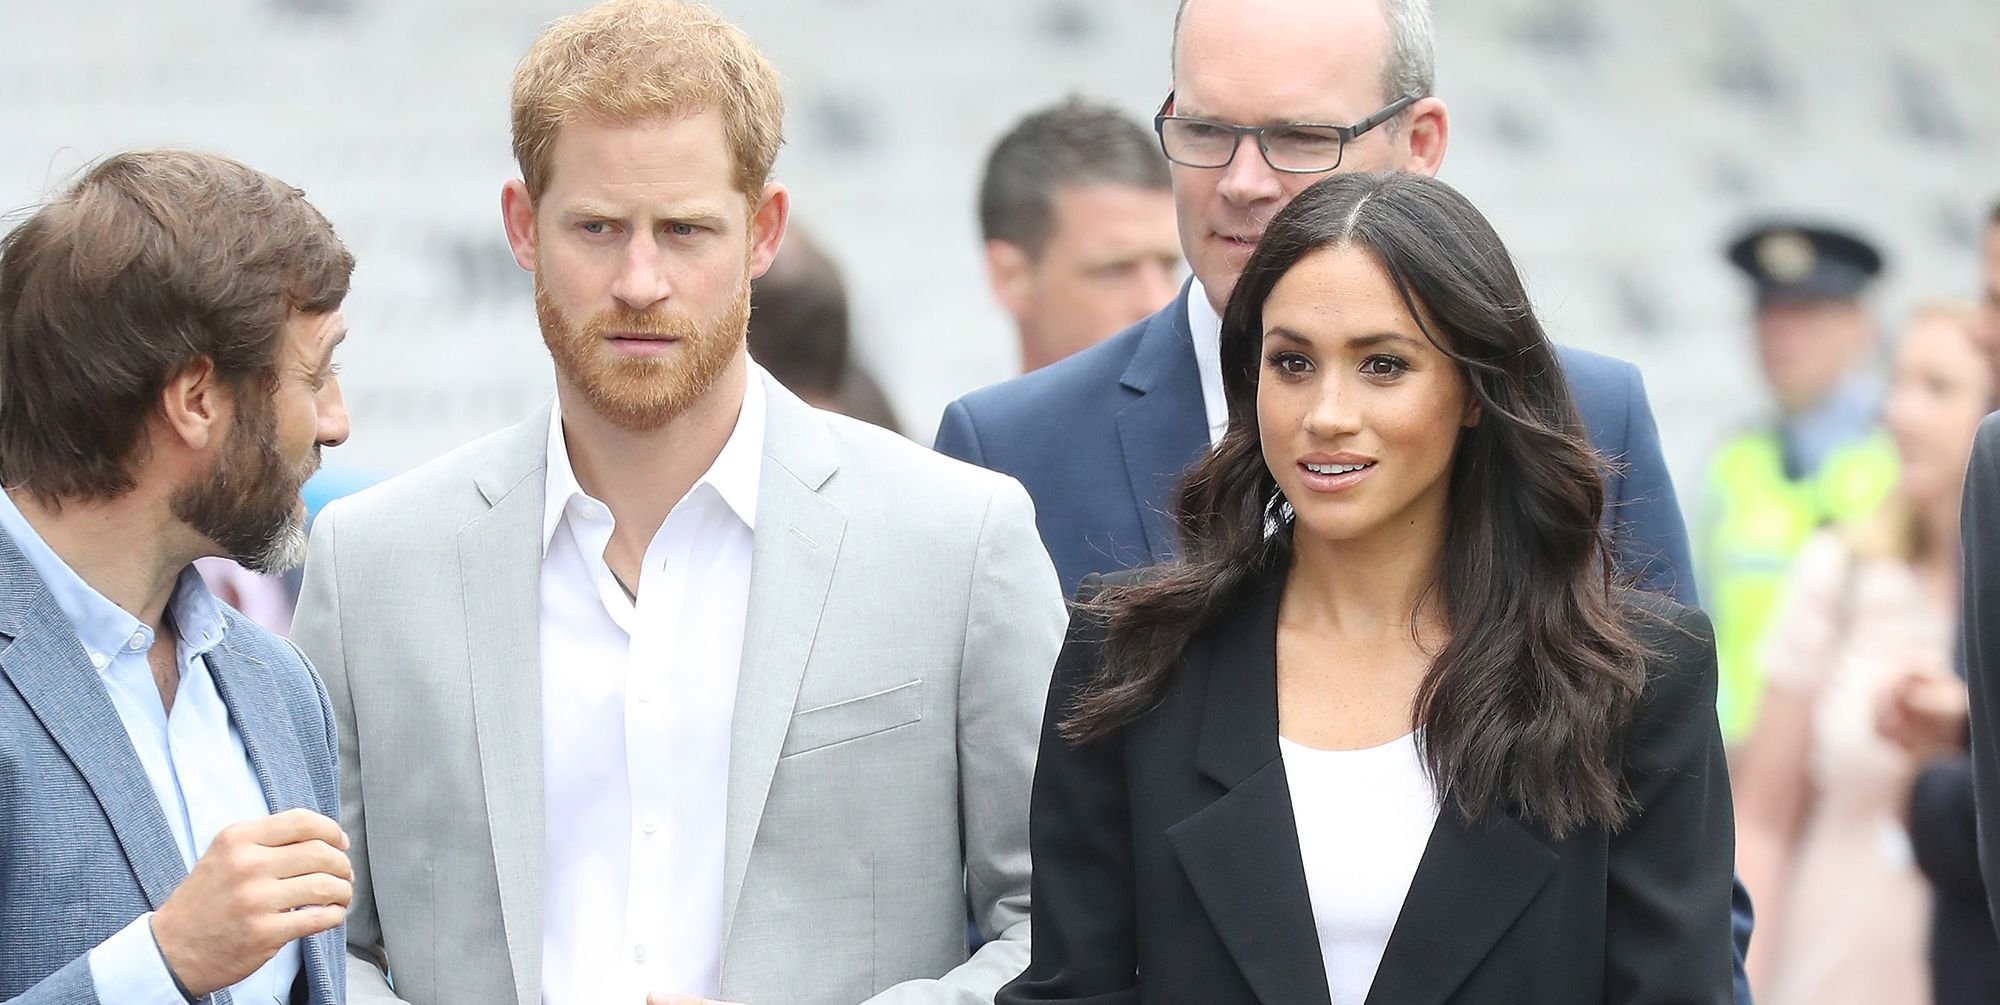 Prince Harry Sells His Car and People Think He and Meghan Markle Are Having Kids Soon